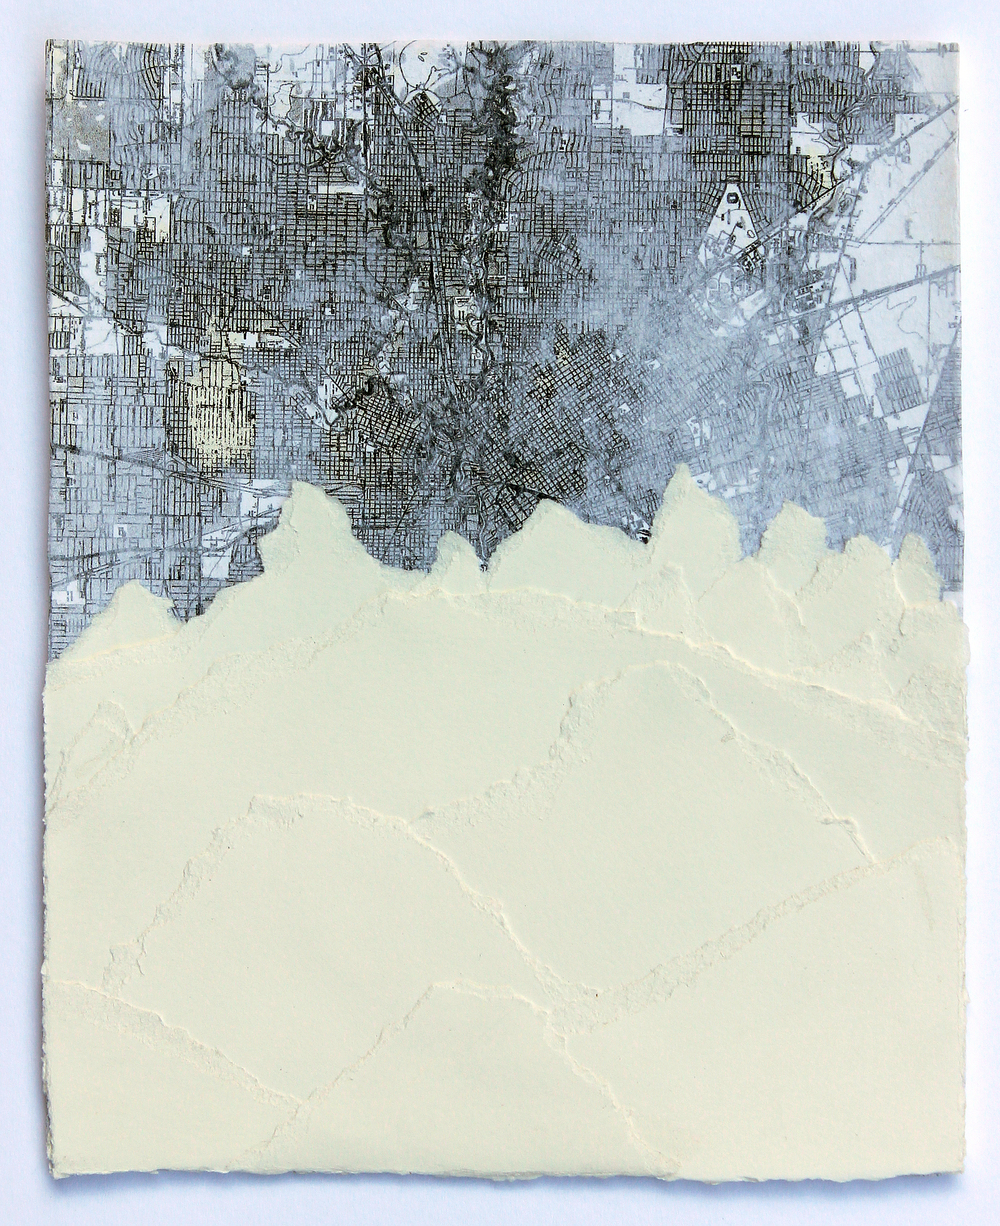 "Tetons 2014 mixed media and collage on paper 9"" x 7"" sold"